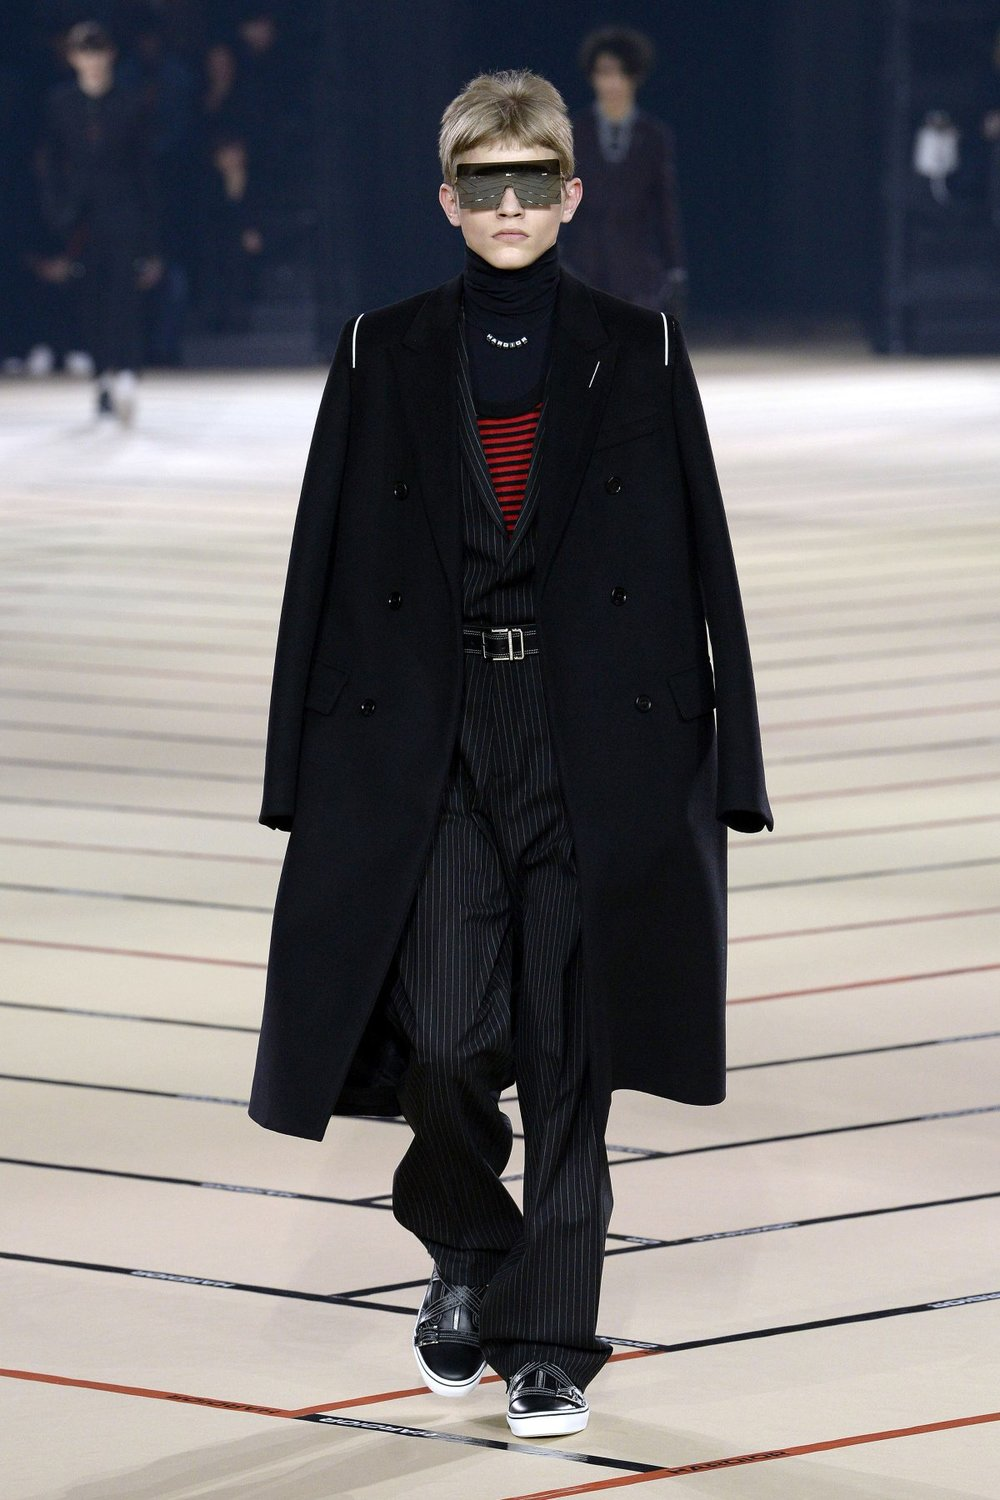 dior_homme_look_4_2017_aw_mens.jpeg